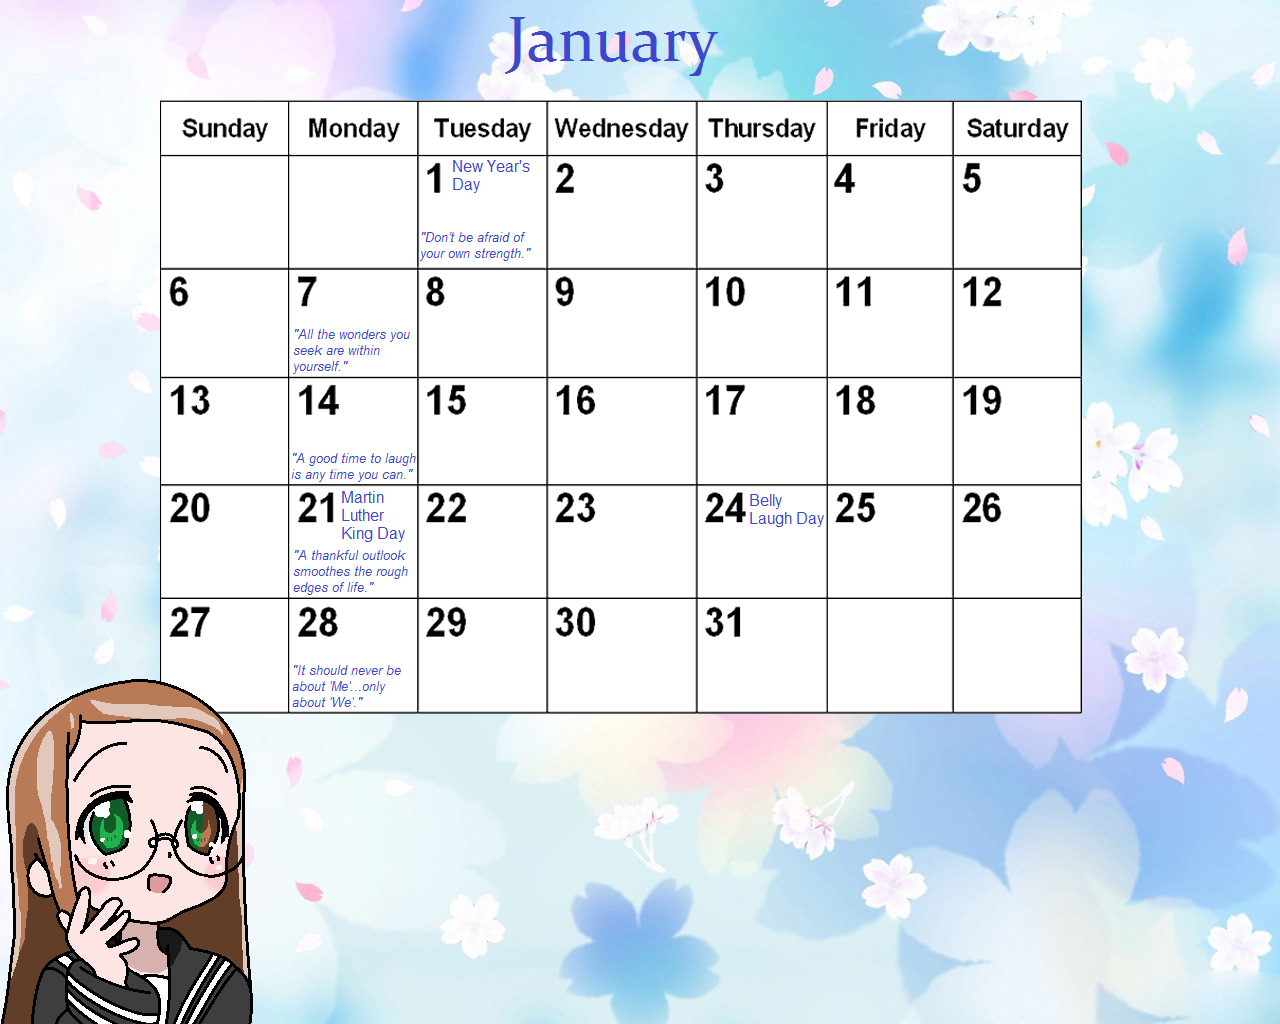 Calendar Quotes For January : January calendar with christian quotes search